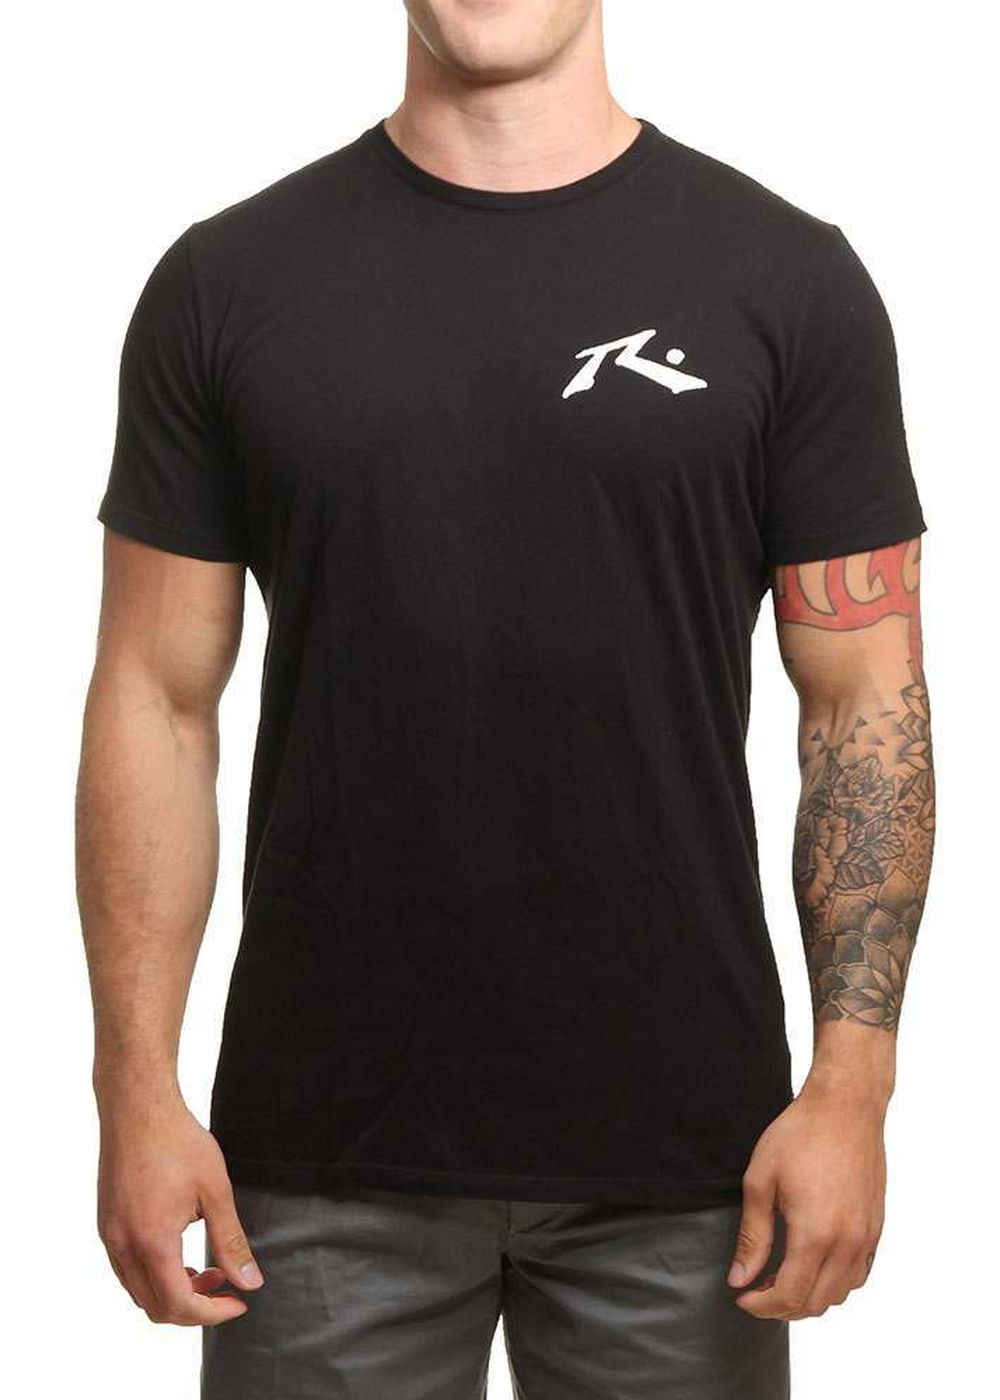 rusty-competition-tee-black